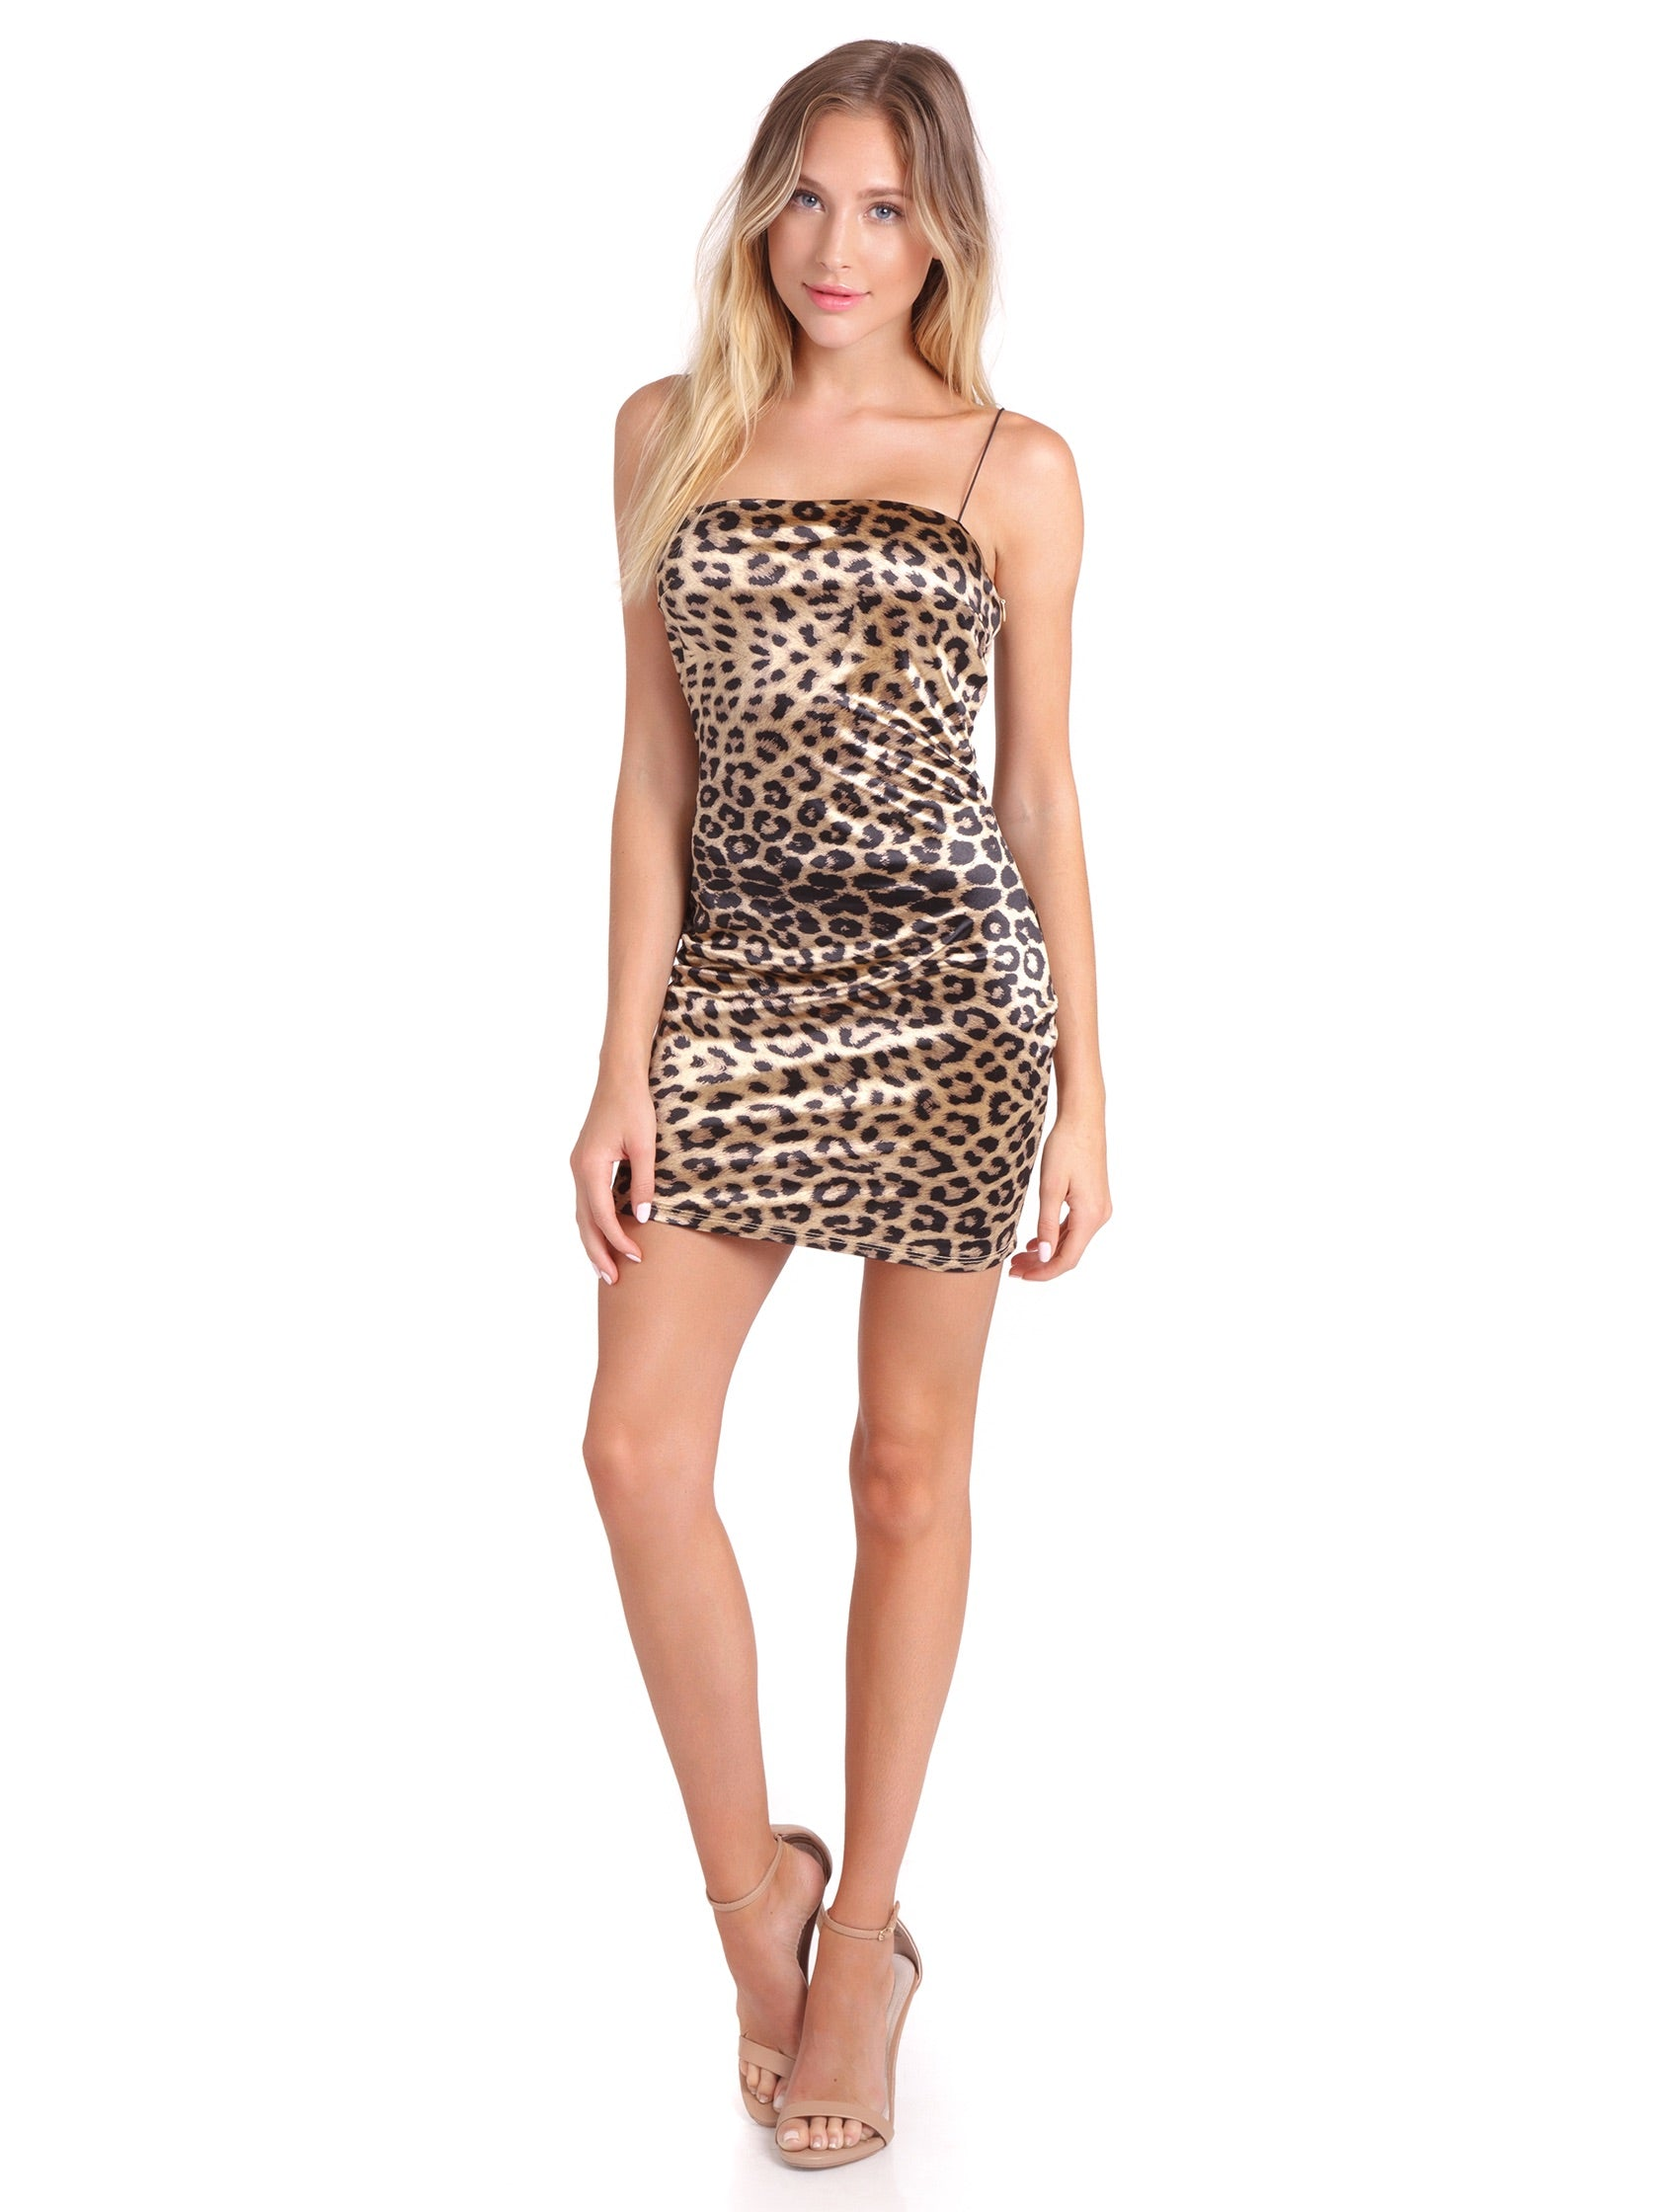 Girl outfit in a dress rental from FashionPass called Cheetah Girl Mini Dress